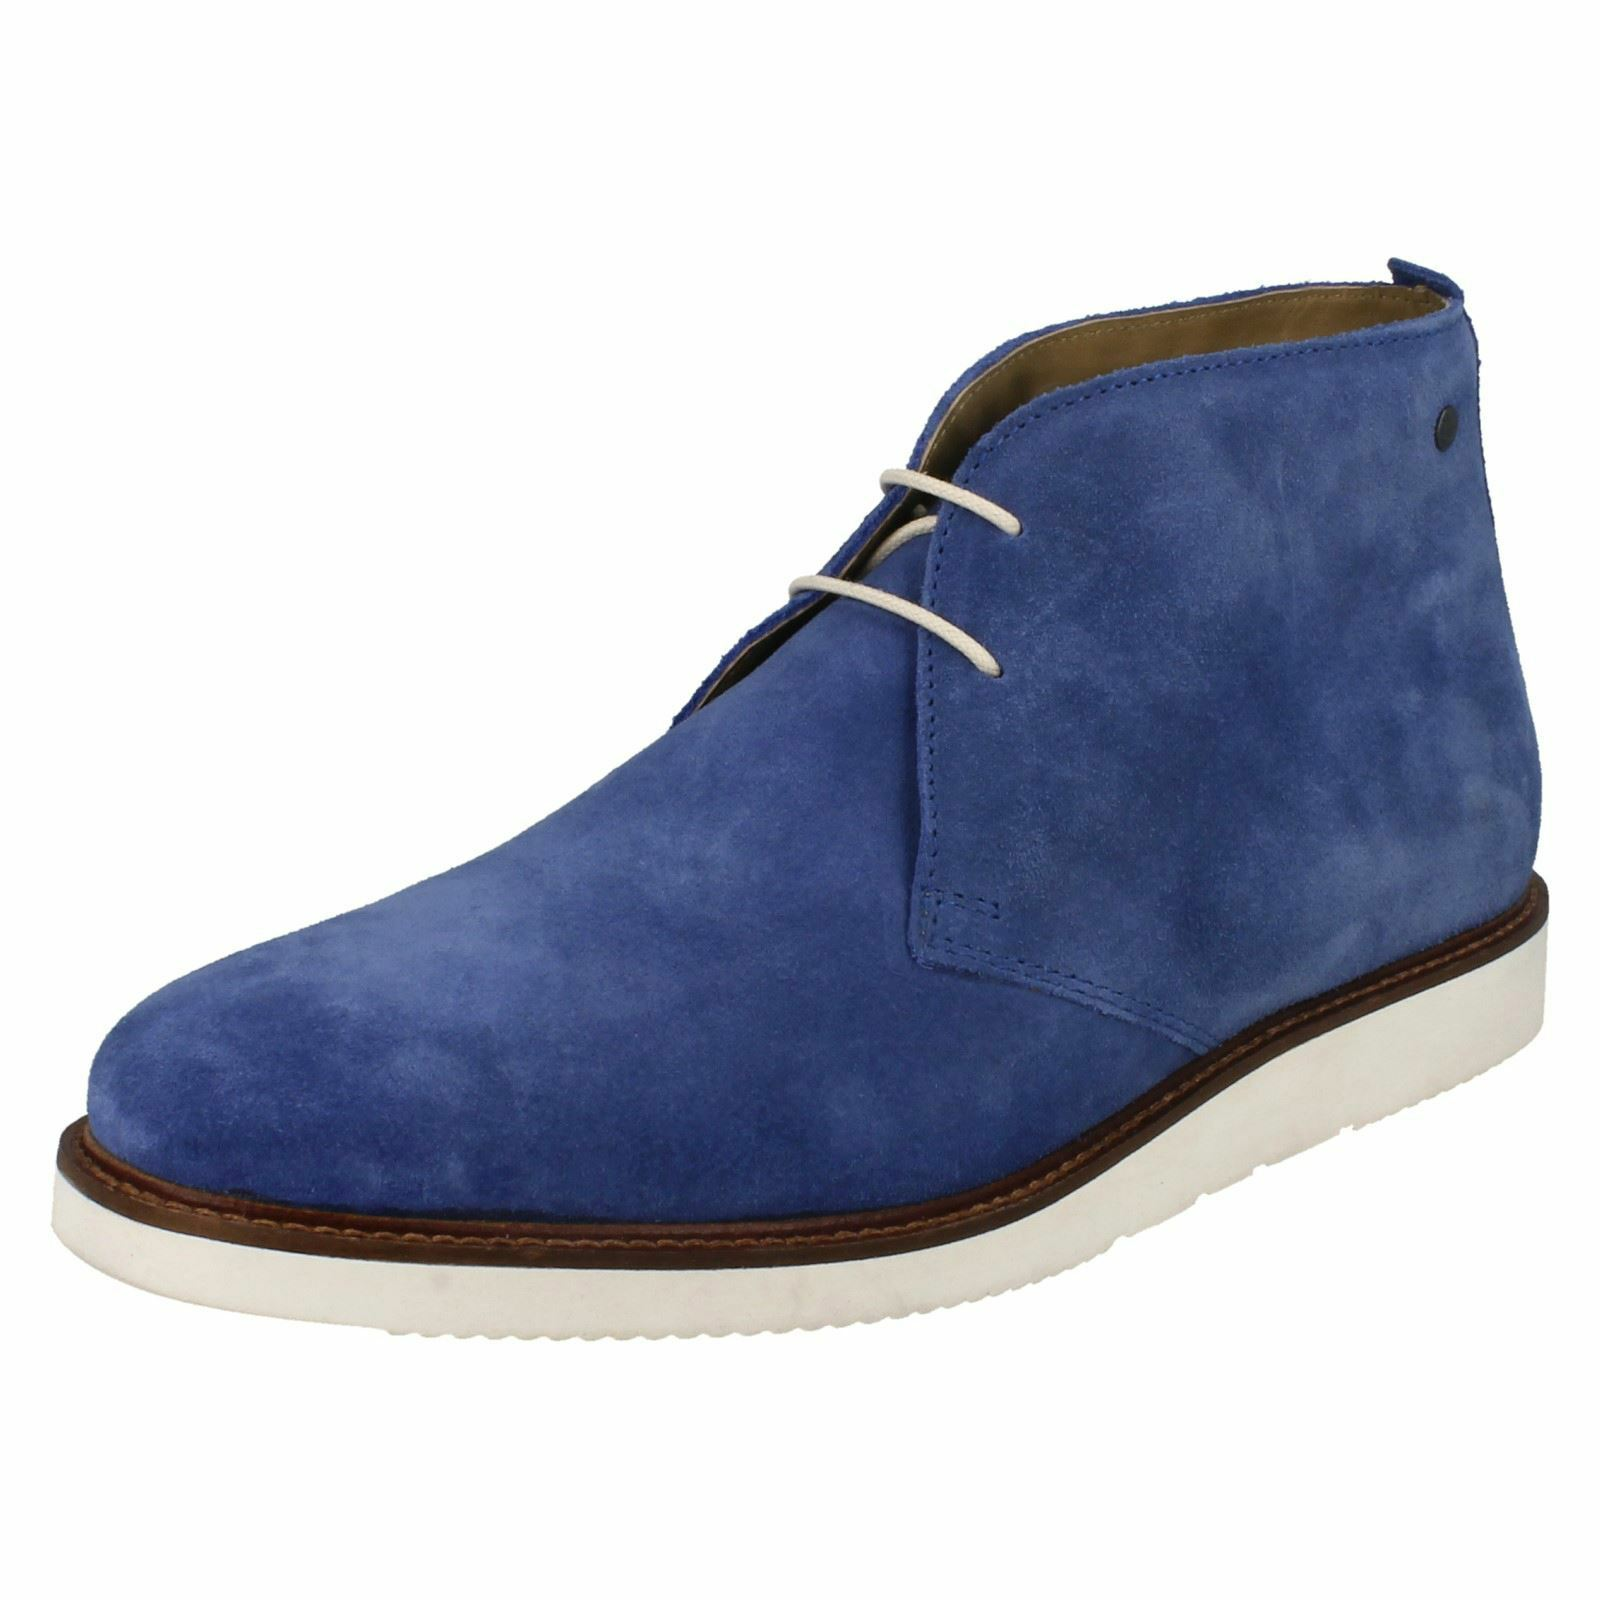 Base London 'Cobden' Smart Herren Blau Wildleder Chukkastiefel